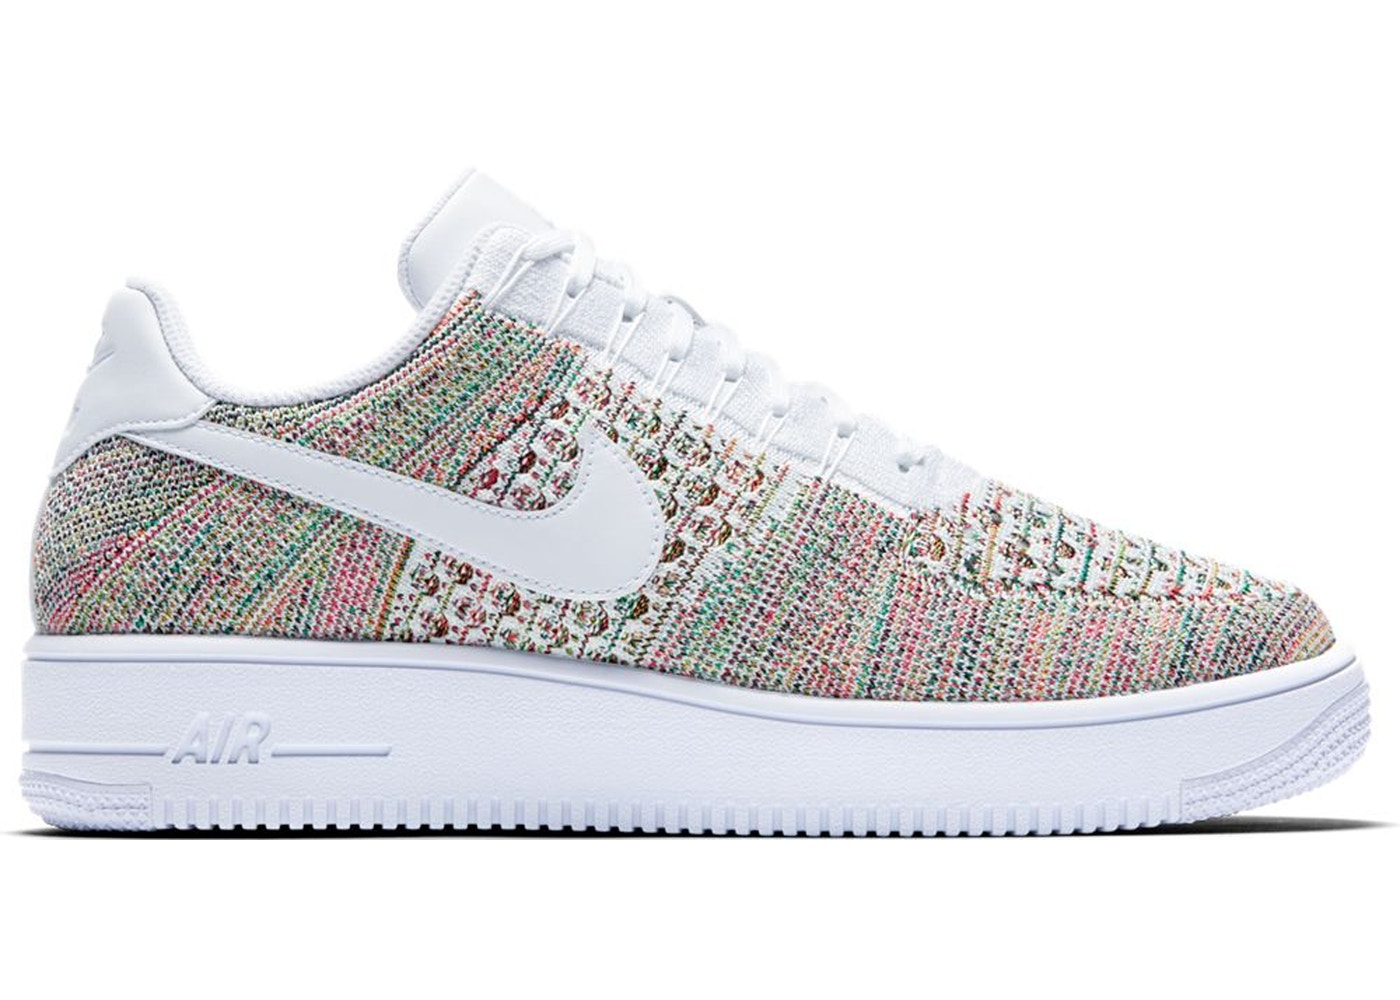 32d54c5475d54 Air Force 1 Ultra Flyknit Low Multi-Color - 817419-701